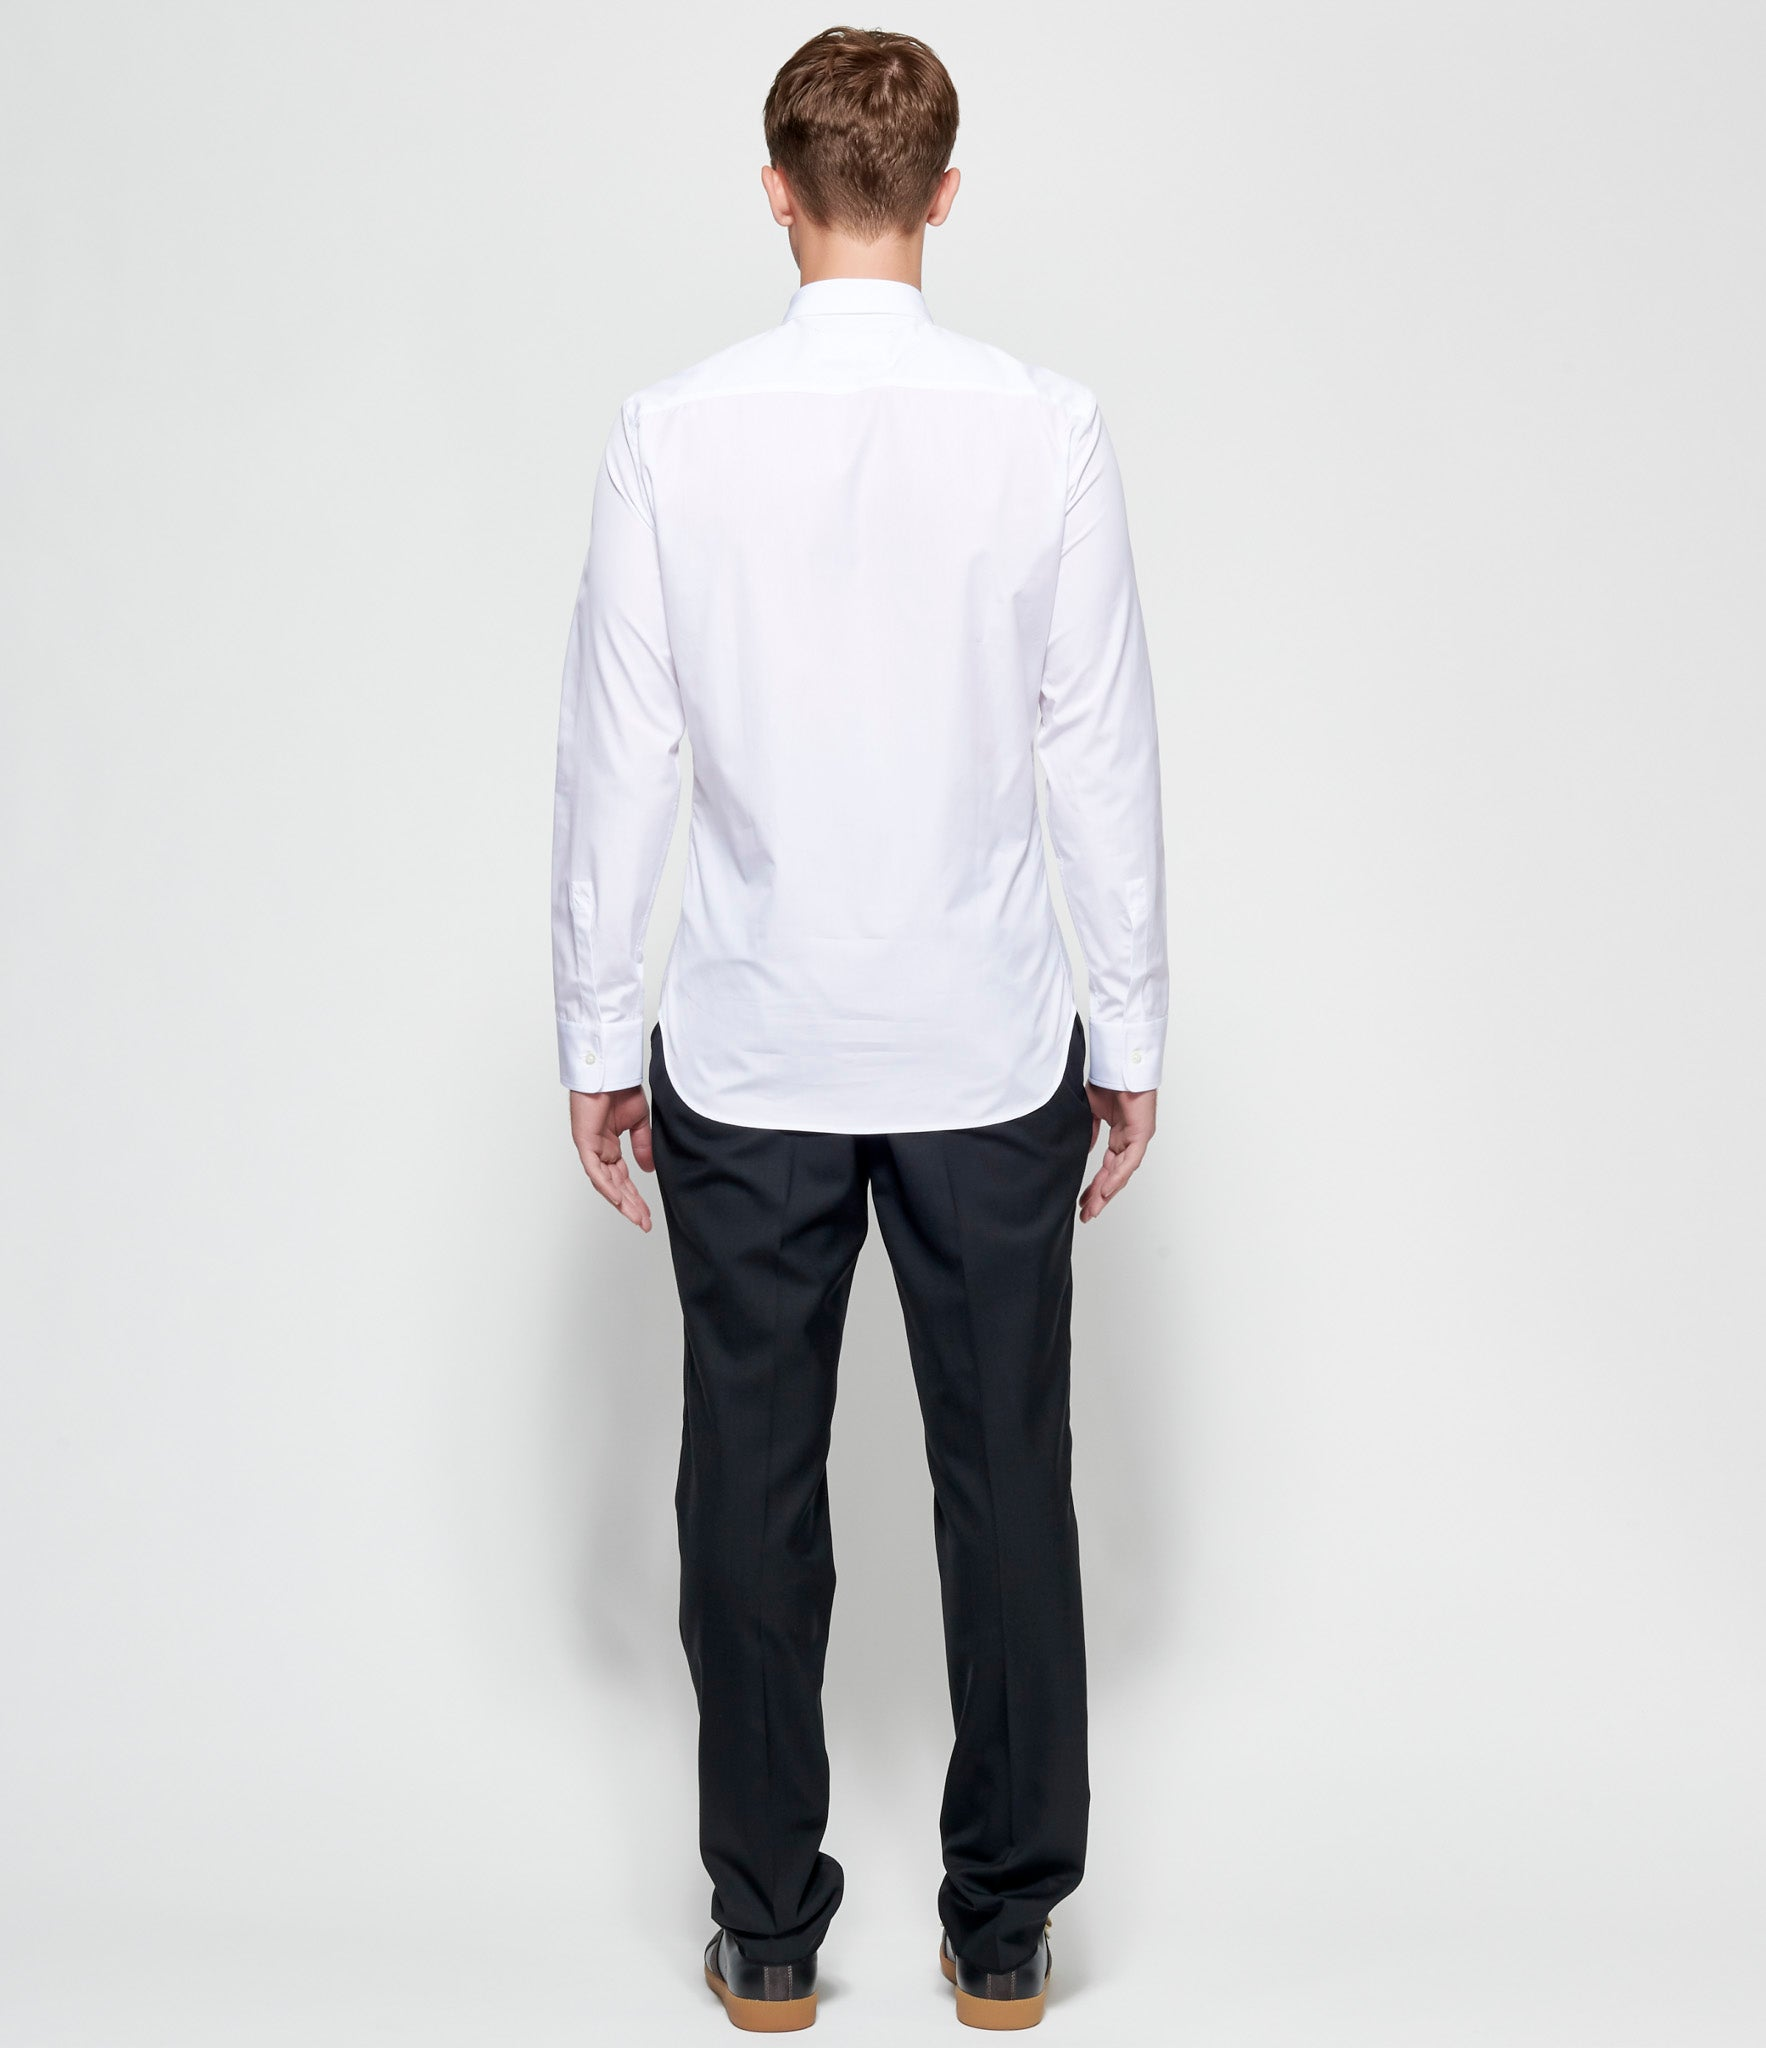 Maison Margiela Cotton Popeline Slim Shirt